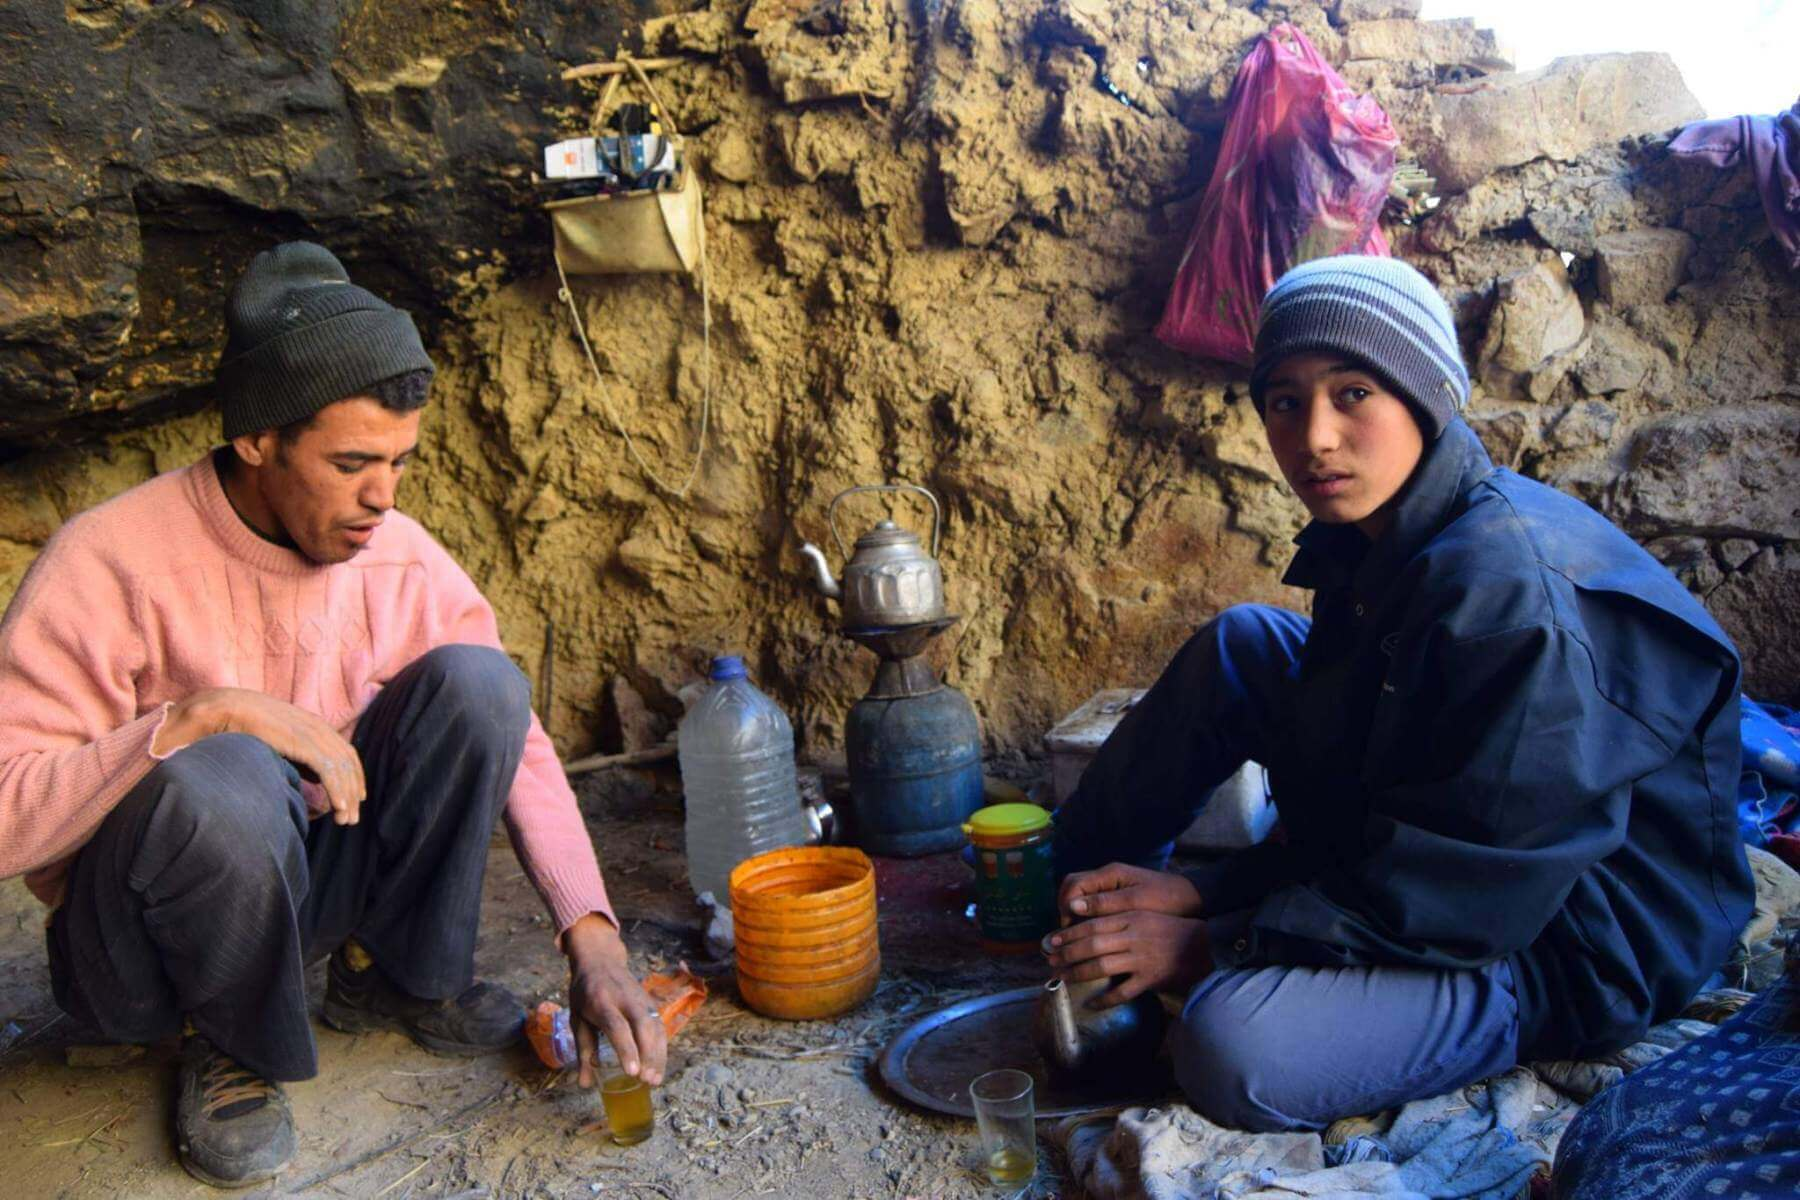 Photo by Hamish - Moroccan nomads drinking tea